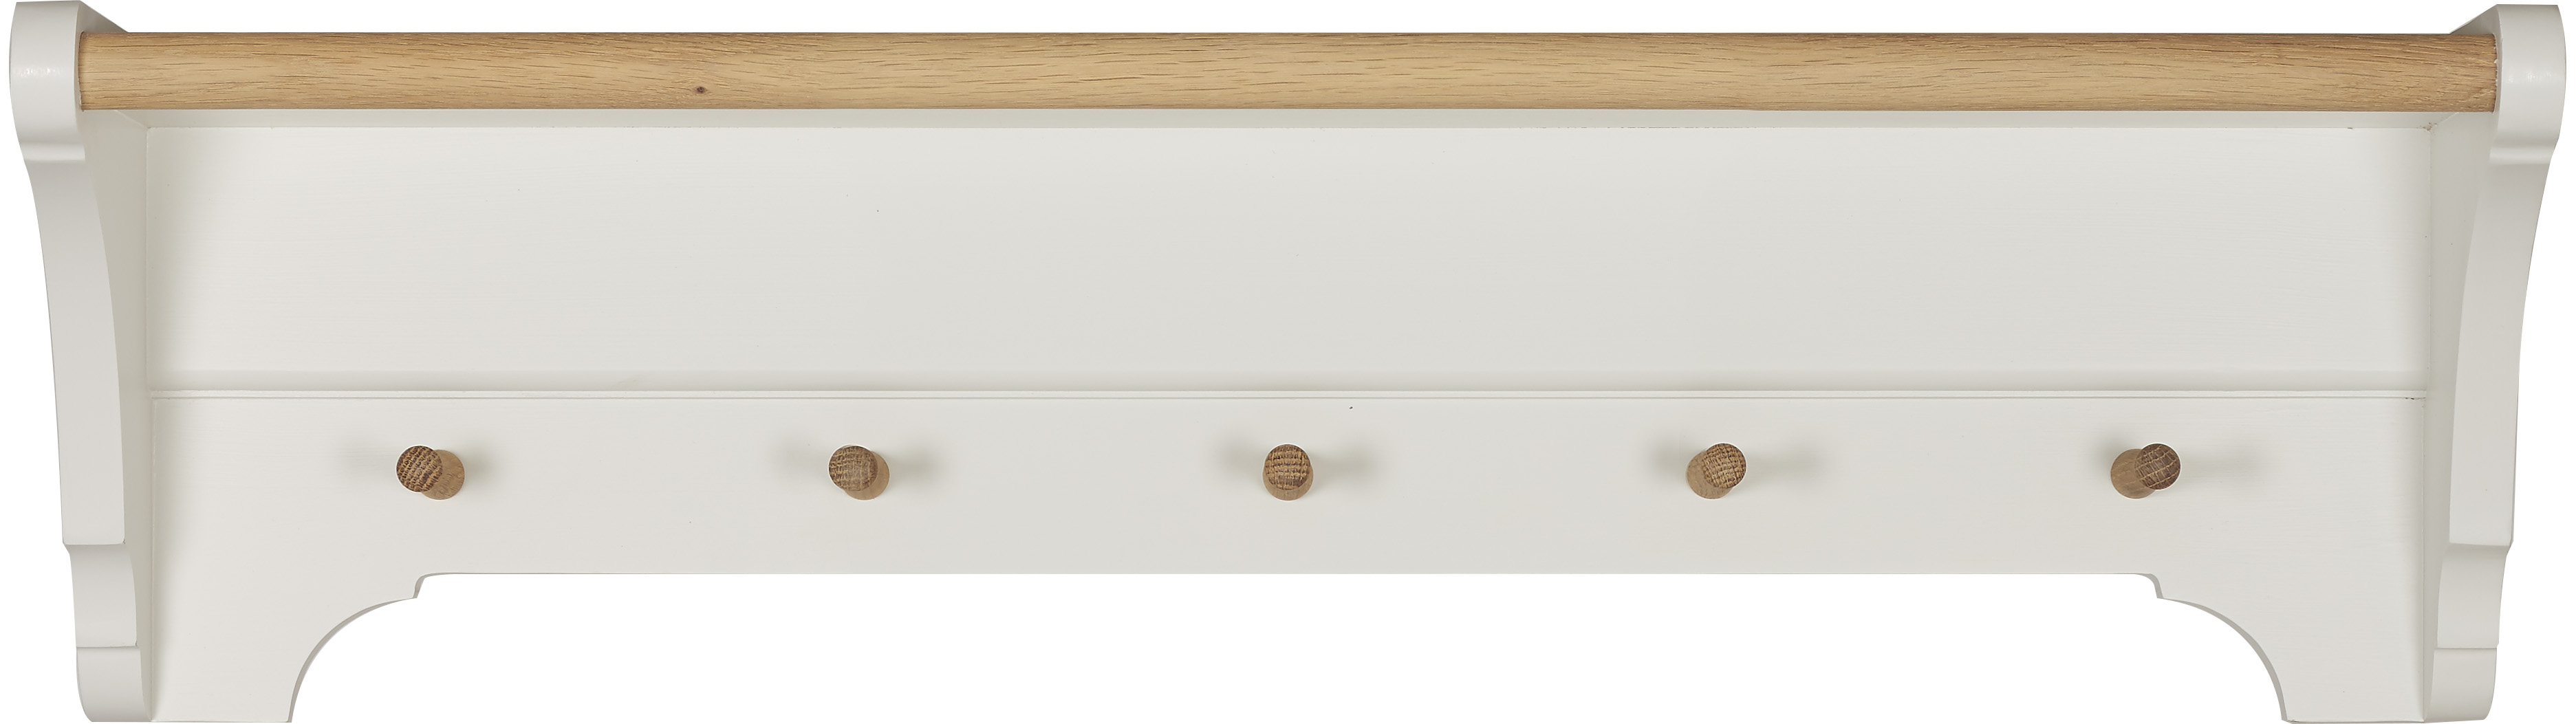 Chichester Coat Rack, 5 Pegs